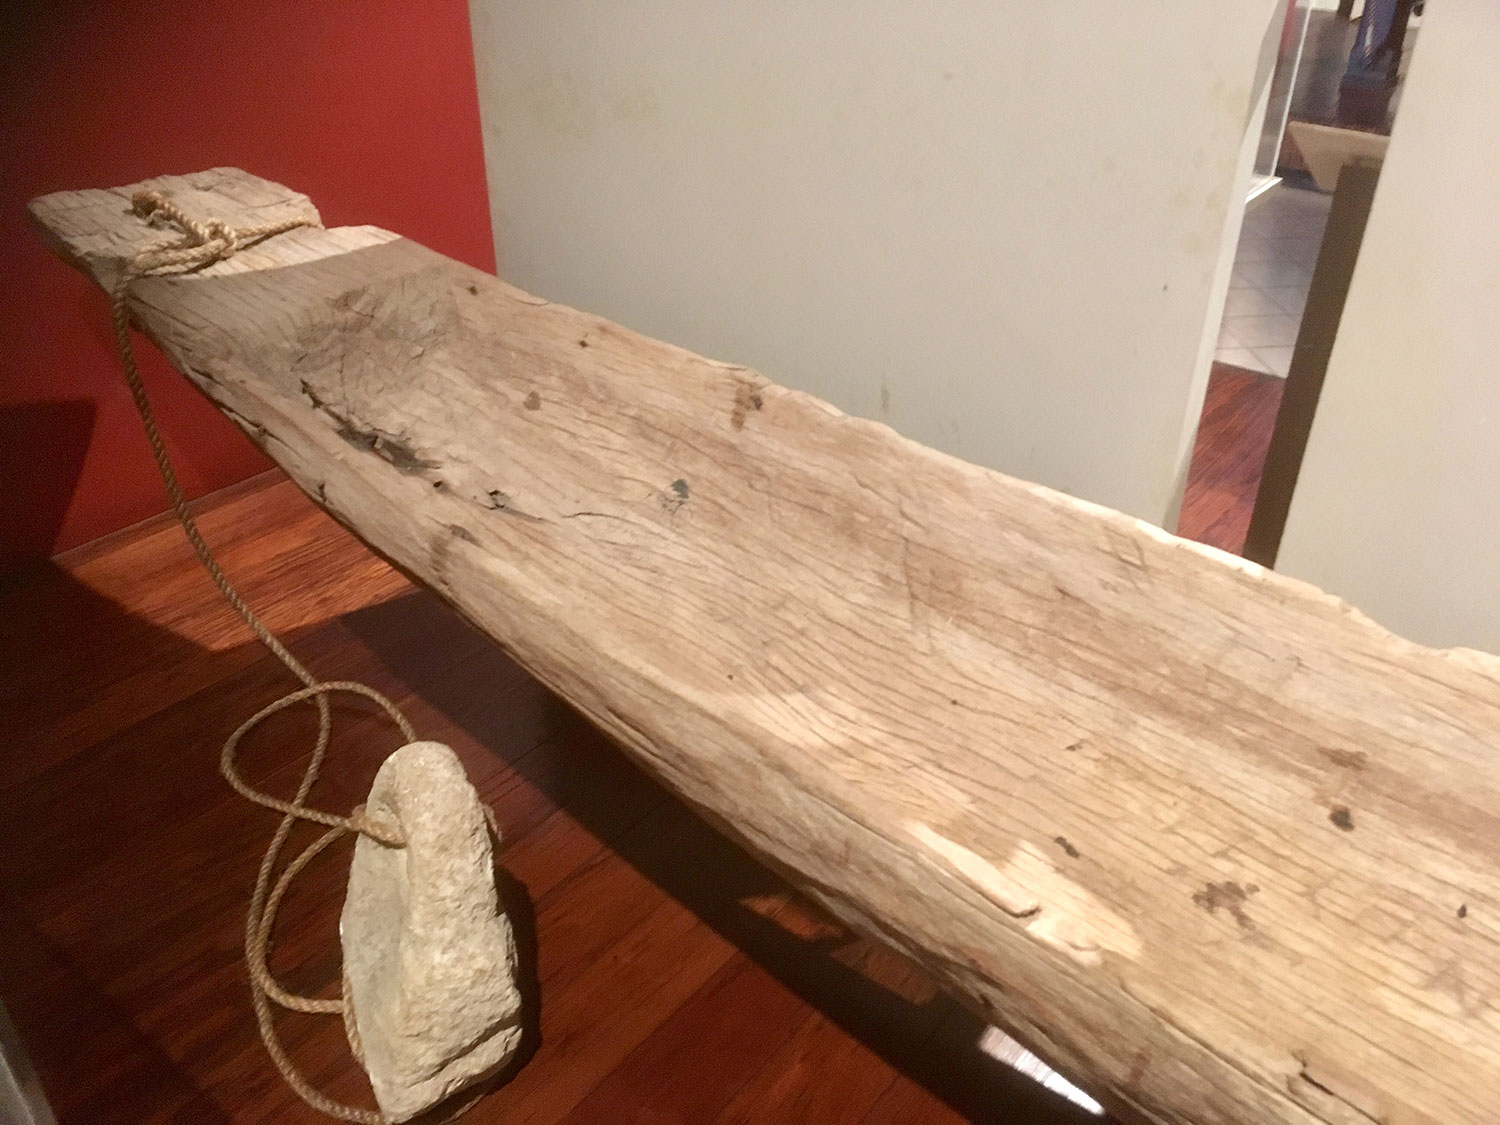 An ancient canoe found in the waters of Cozumel.